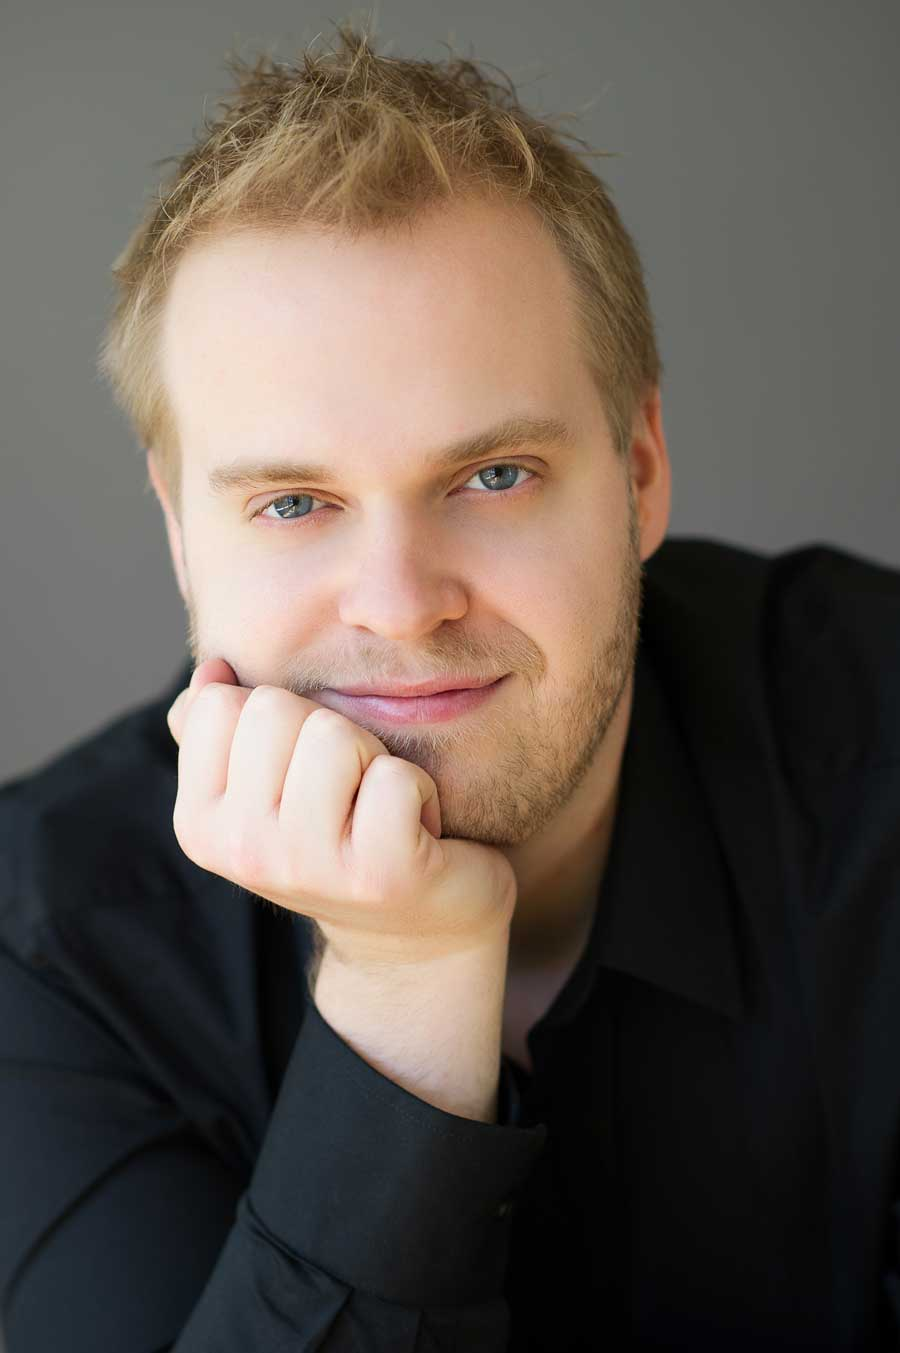 Matthew Thompson, Assistant Professor of Music, University of Michigan School of Music, Theatre & Dance